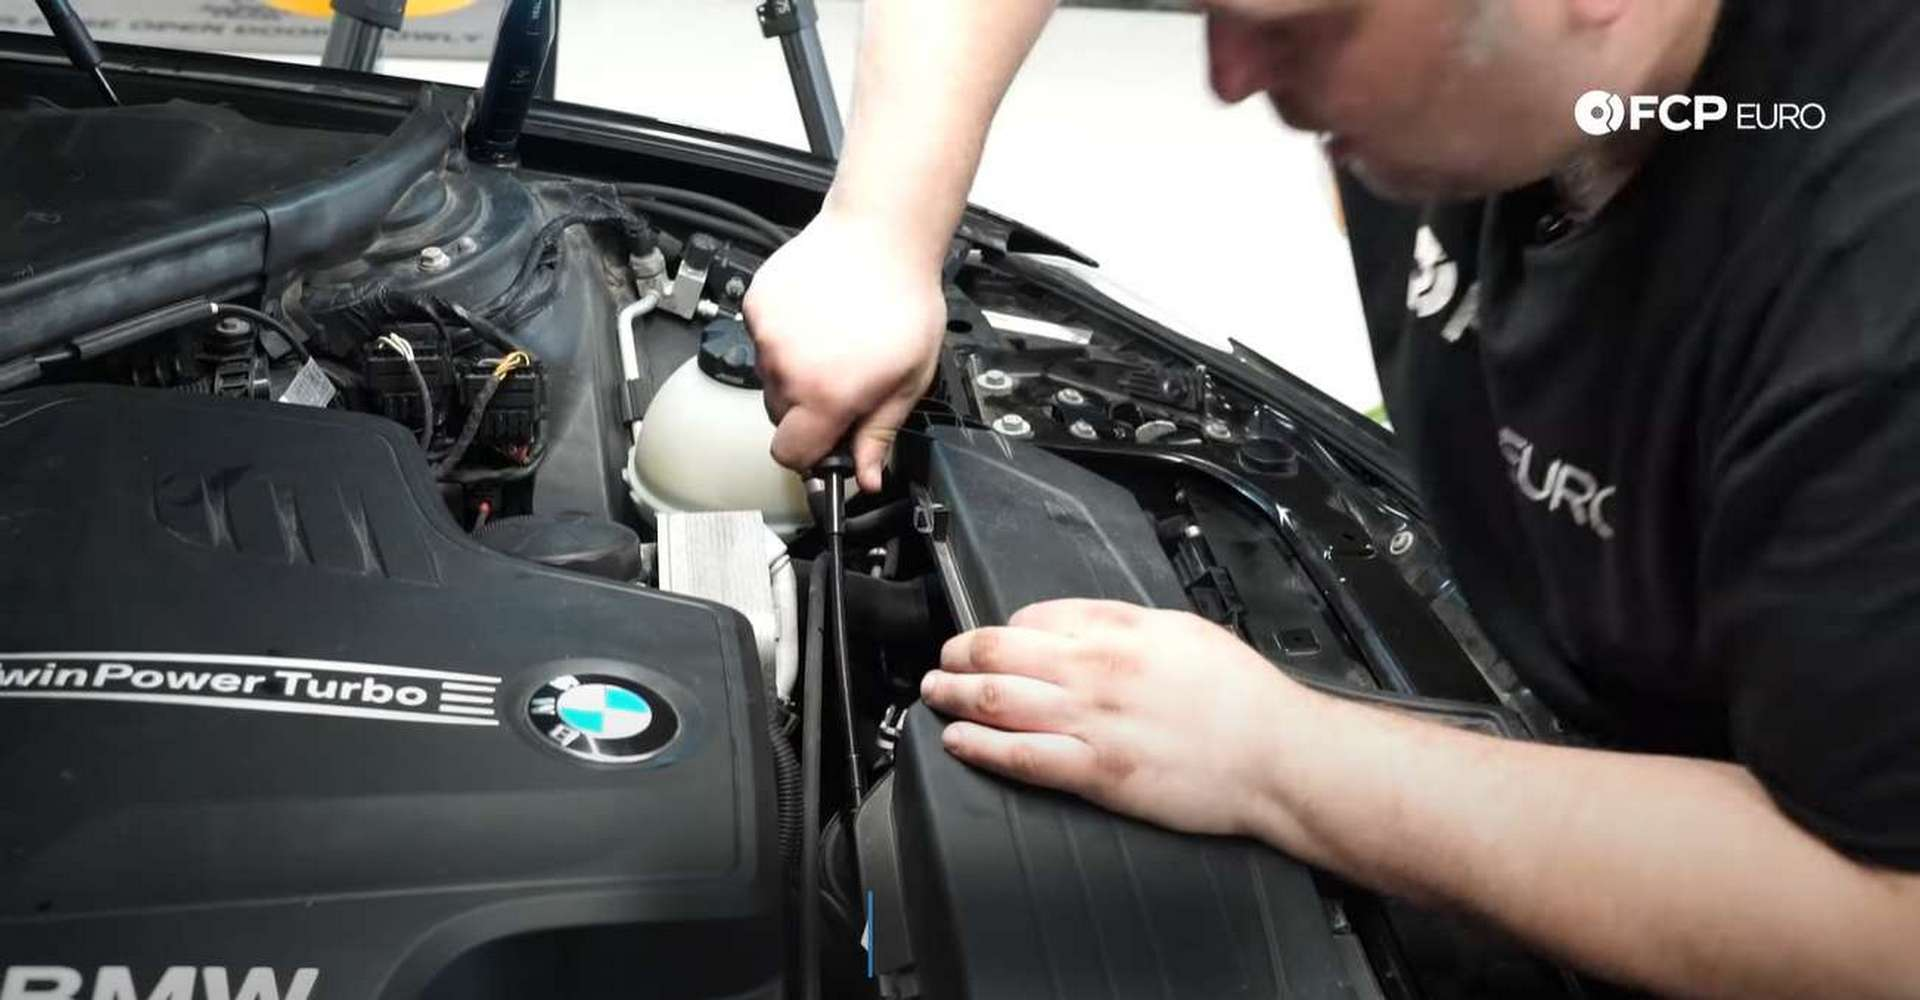 DIY BMW F30 Serpentine Belt Replacement tightening the airbox hose clamp